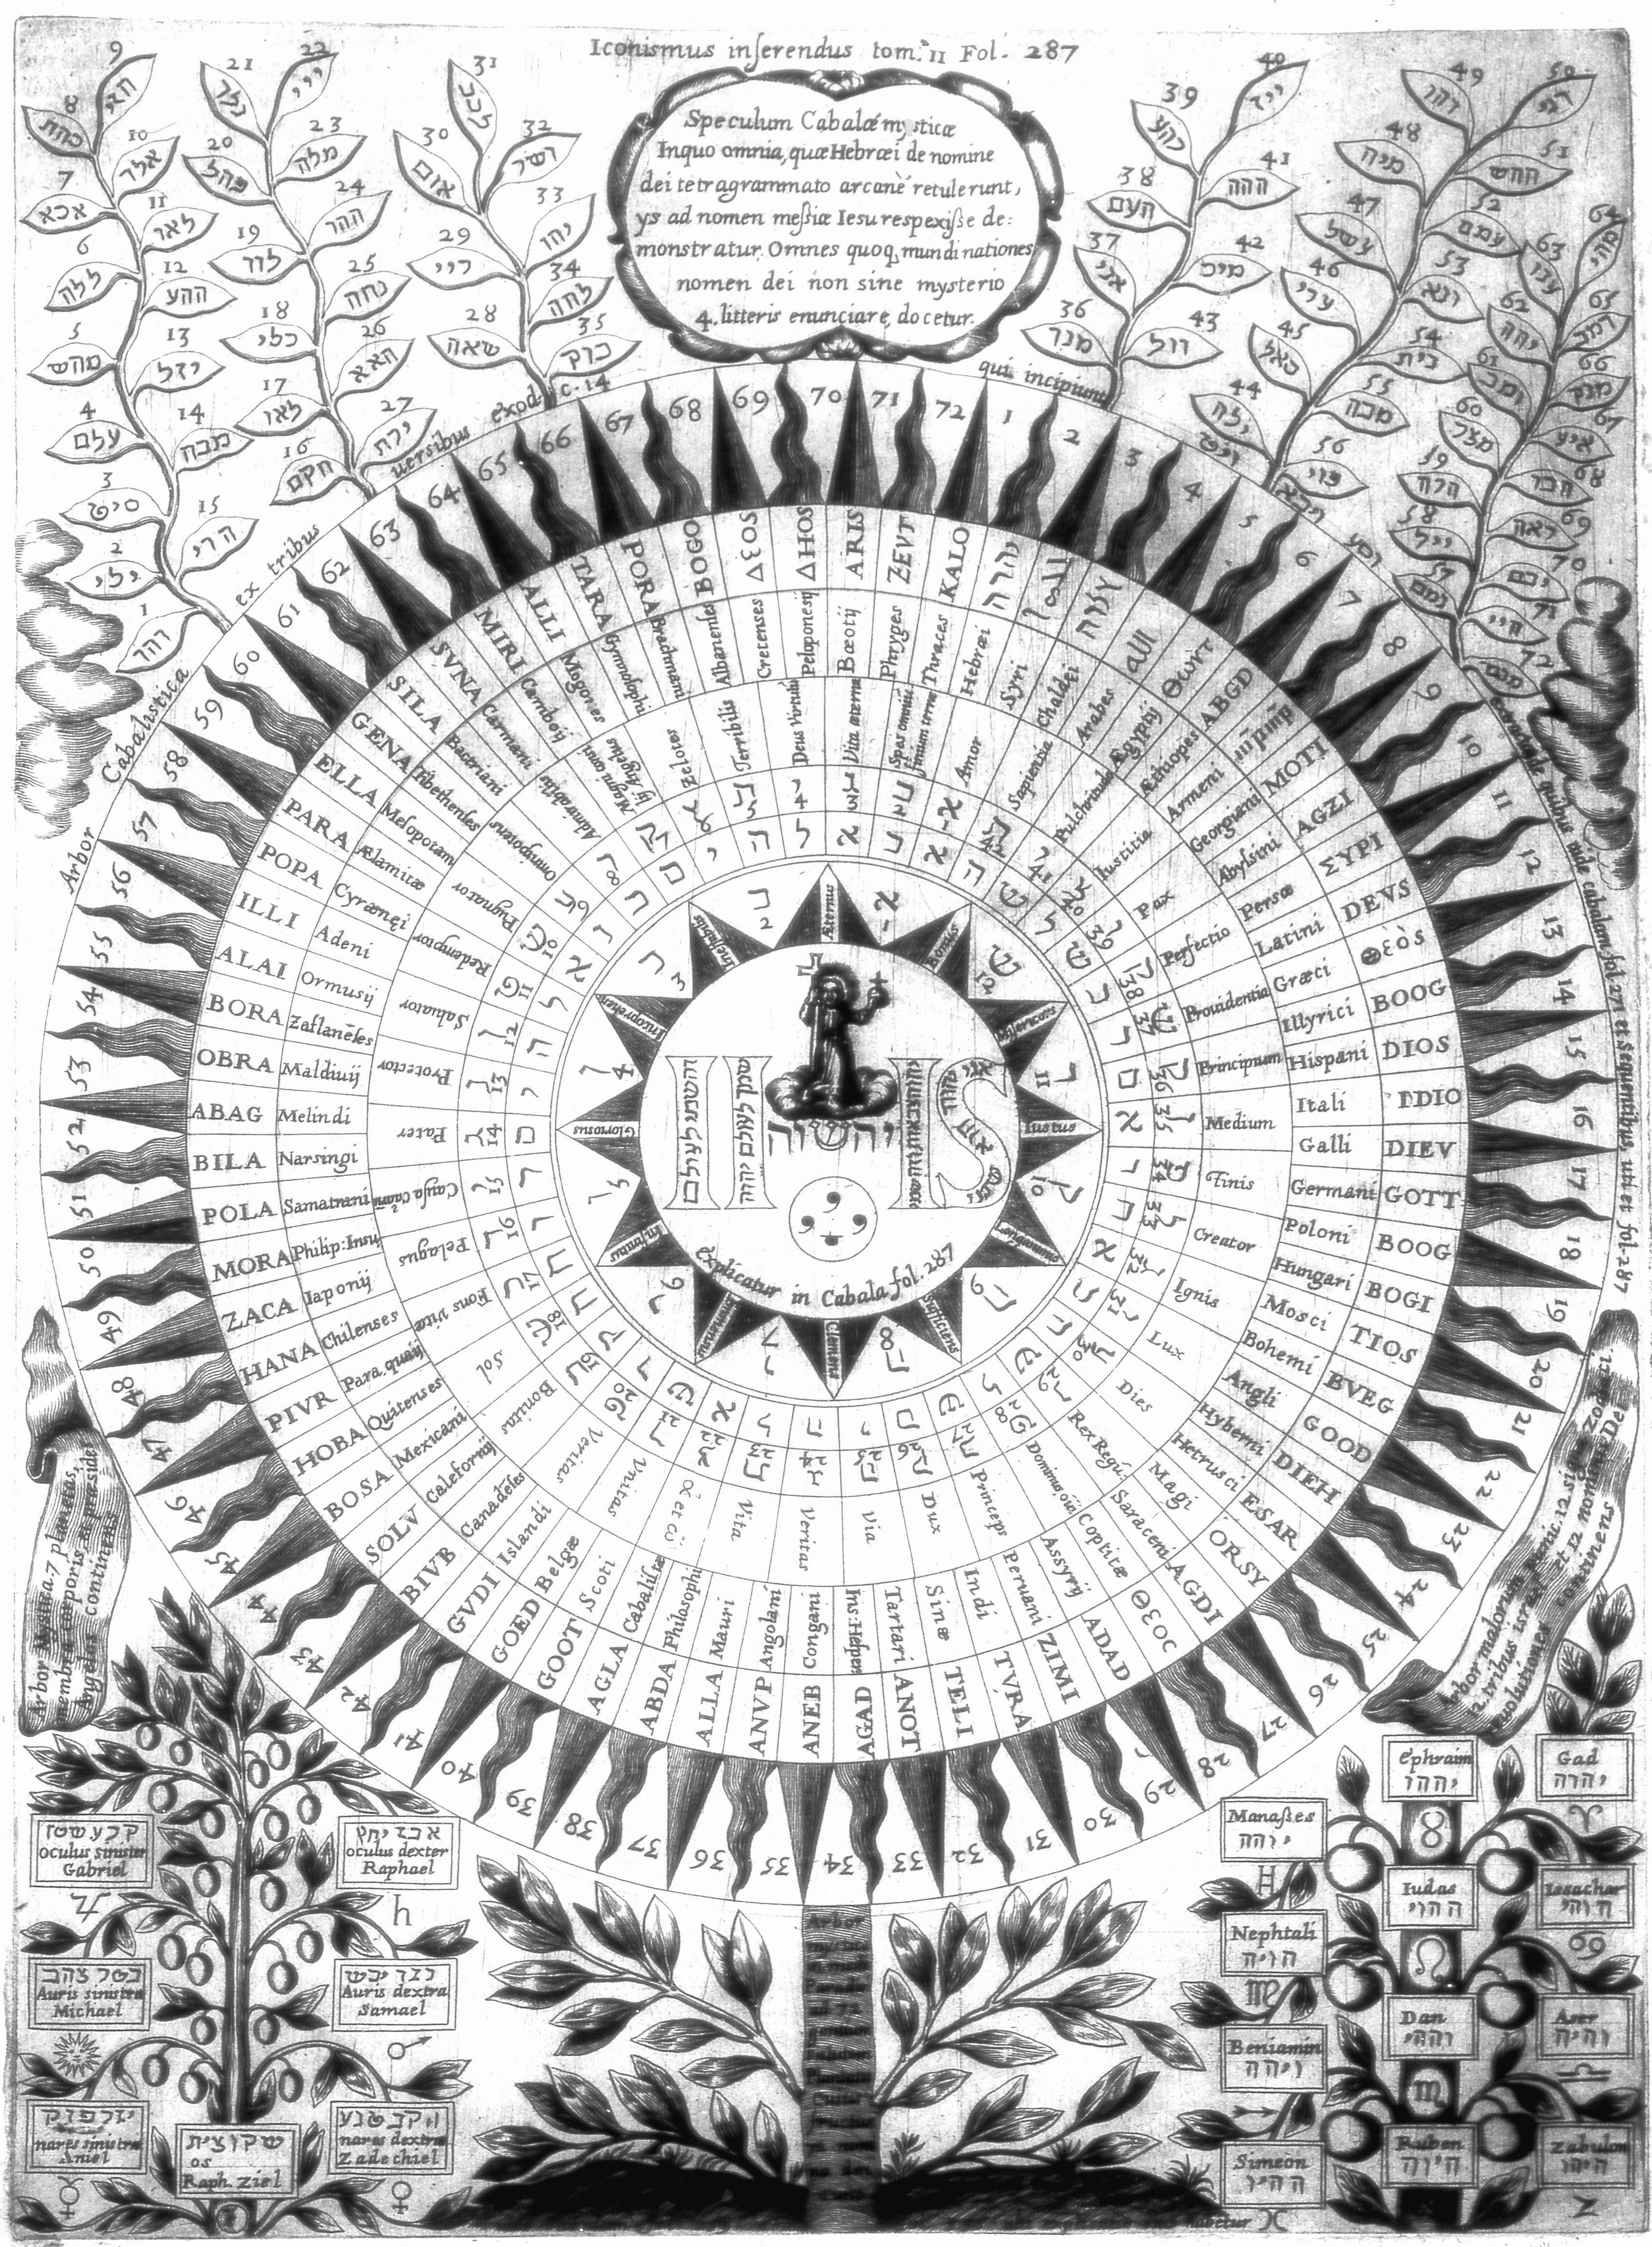 Athanasius kircher 1652 names of god from the dipus gyptiacus athanasius kircher 1652 names of god from the dipus gyptiacus fandeluxe Choice Image